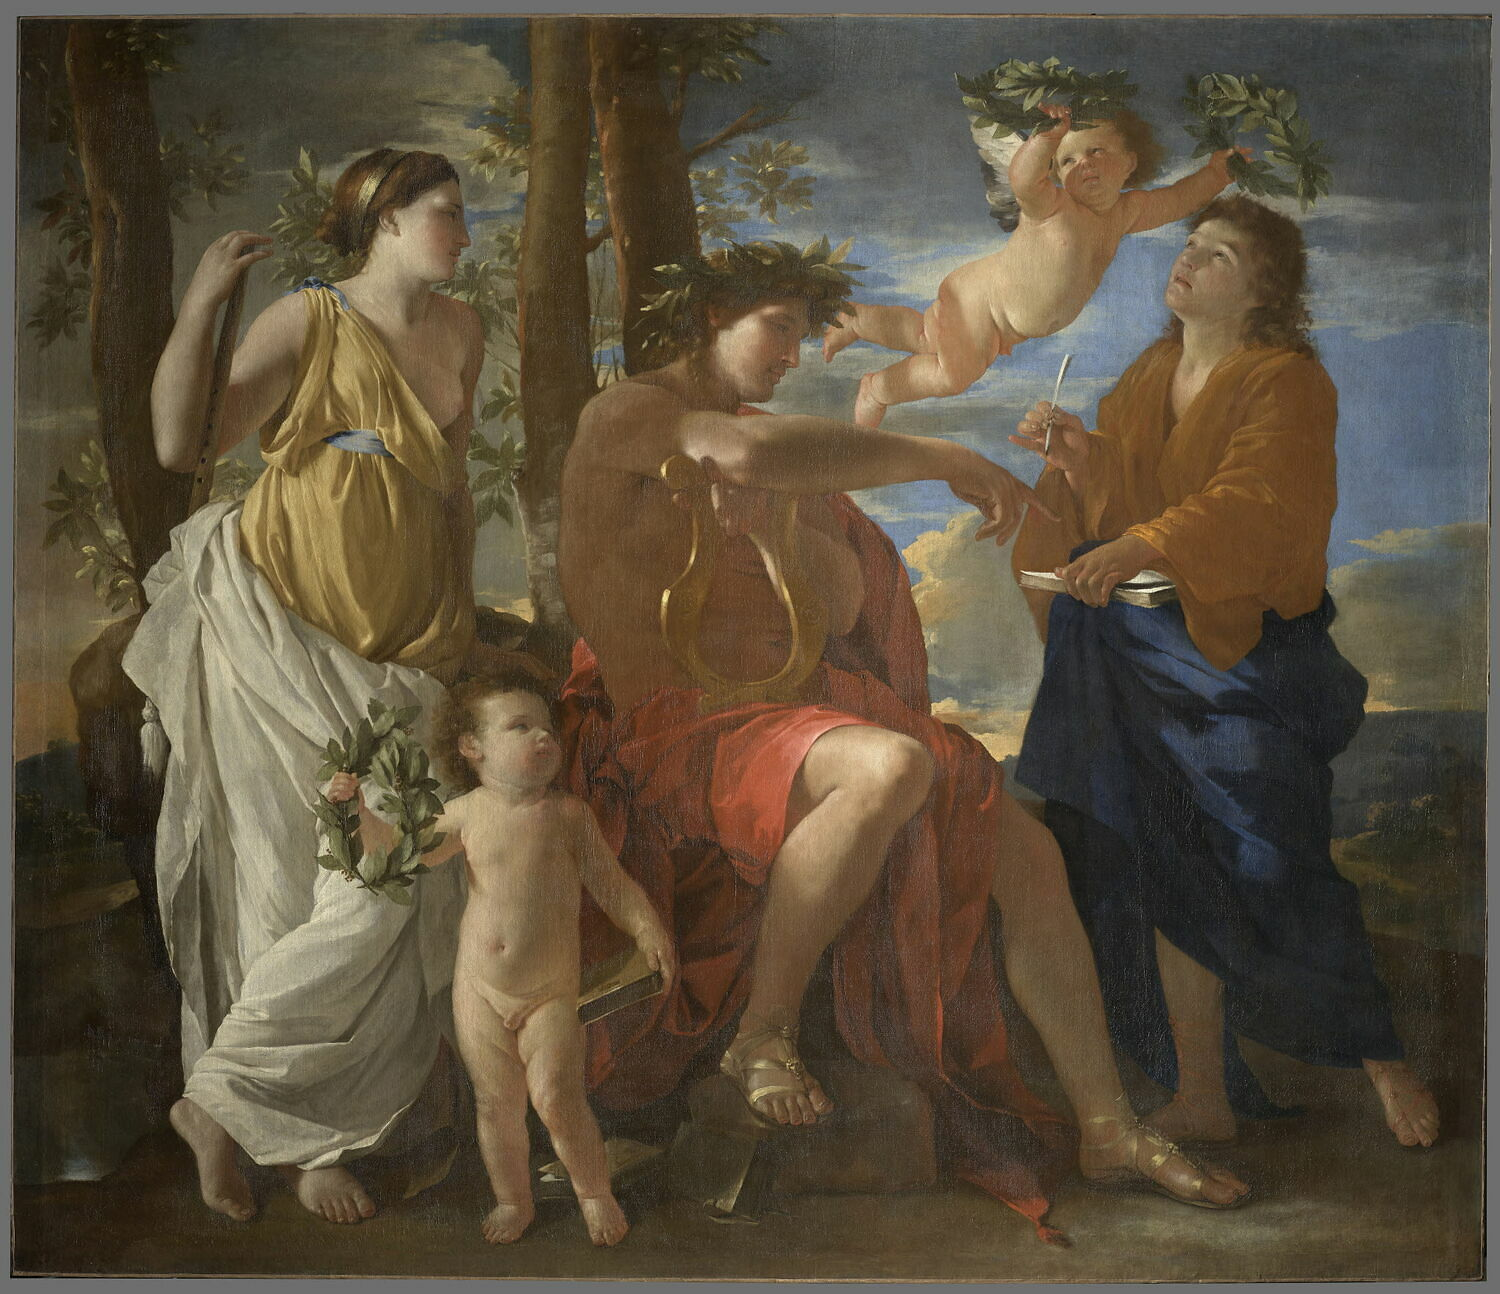 Nicolas Poussin, Inspiration of the Poet, 1630,Louvre Museum, Paris, France. Representing of poetry on Art Timeline